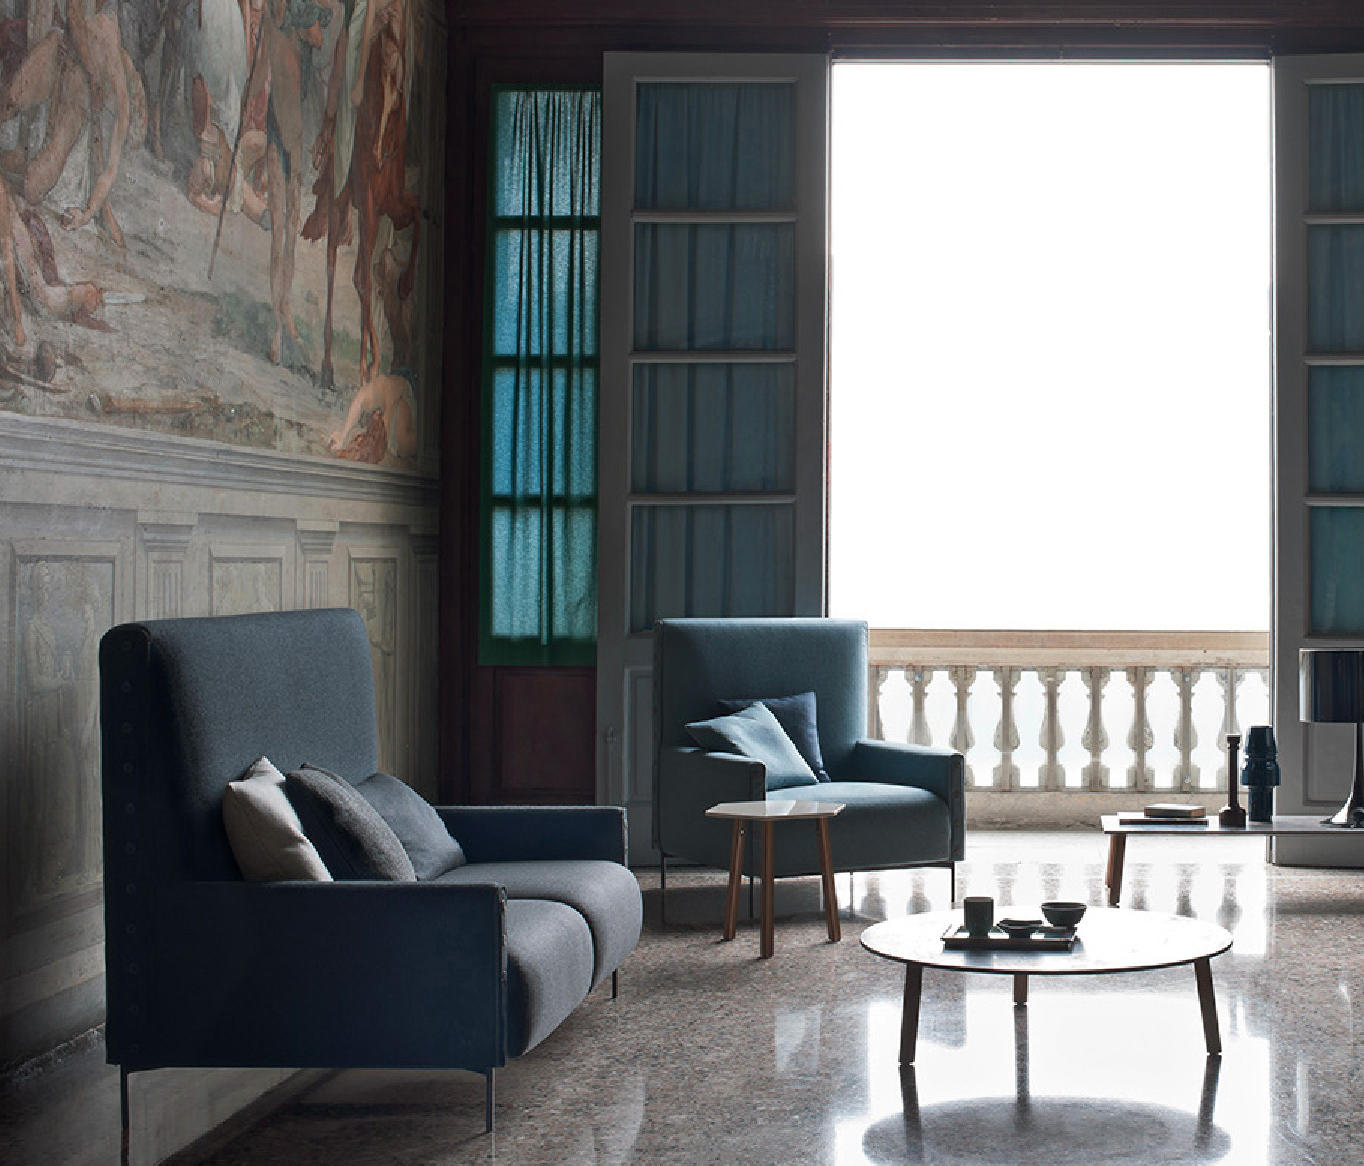 HIGHLIFELounge sofas from Tacchini ItaliaArchitonic